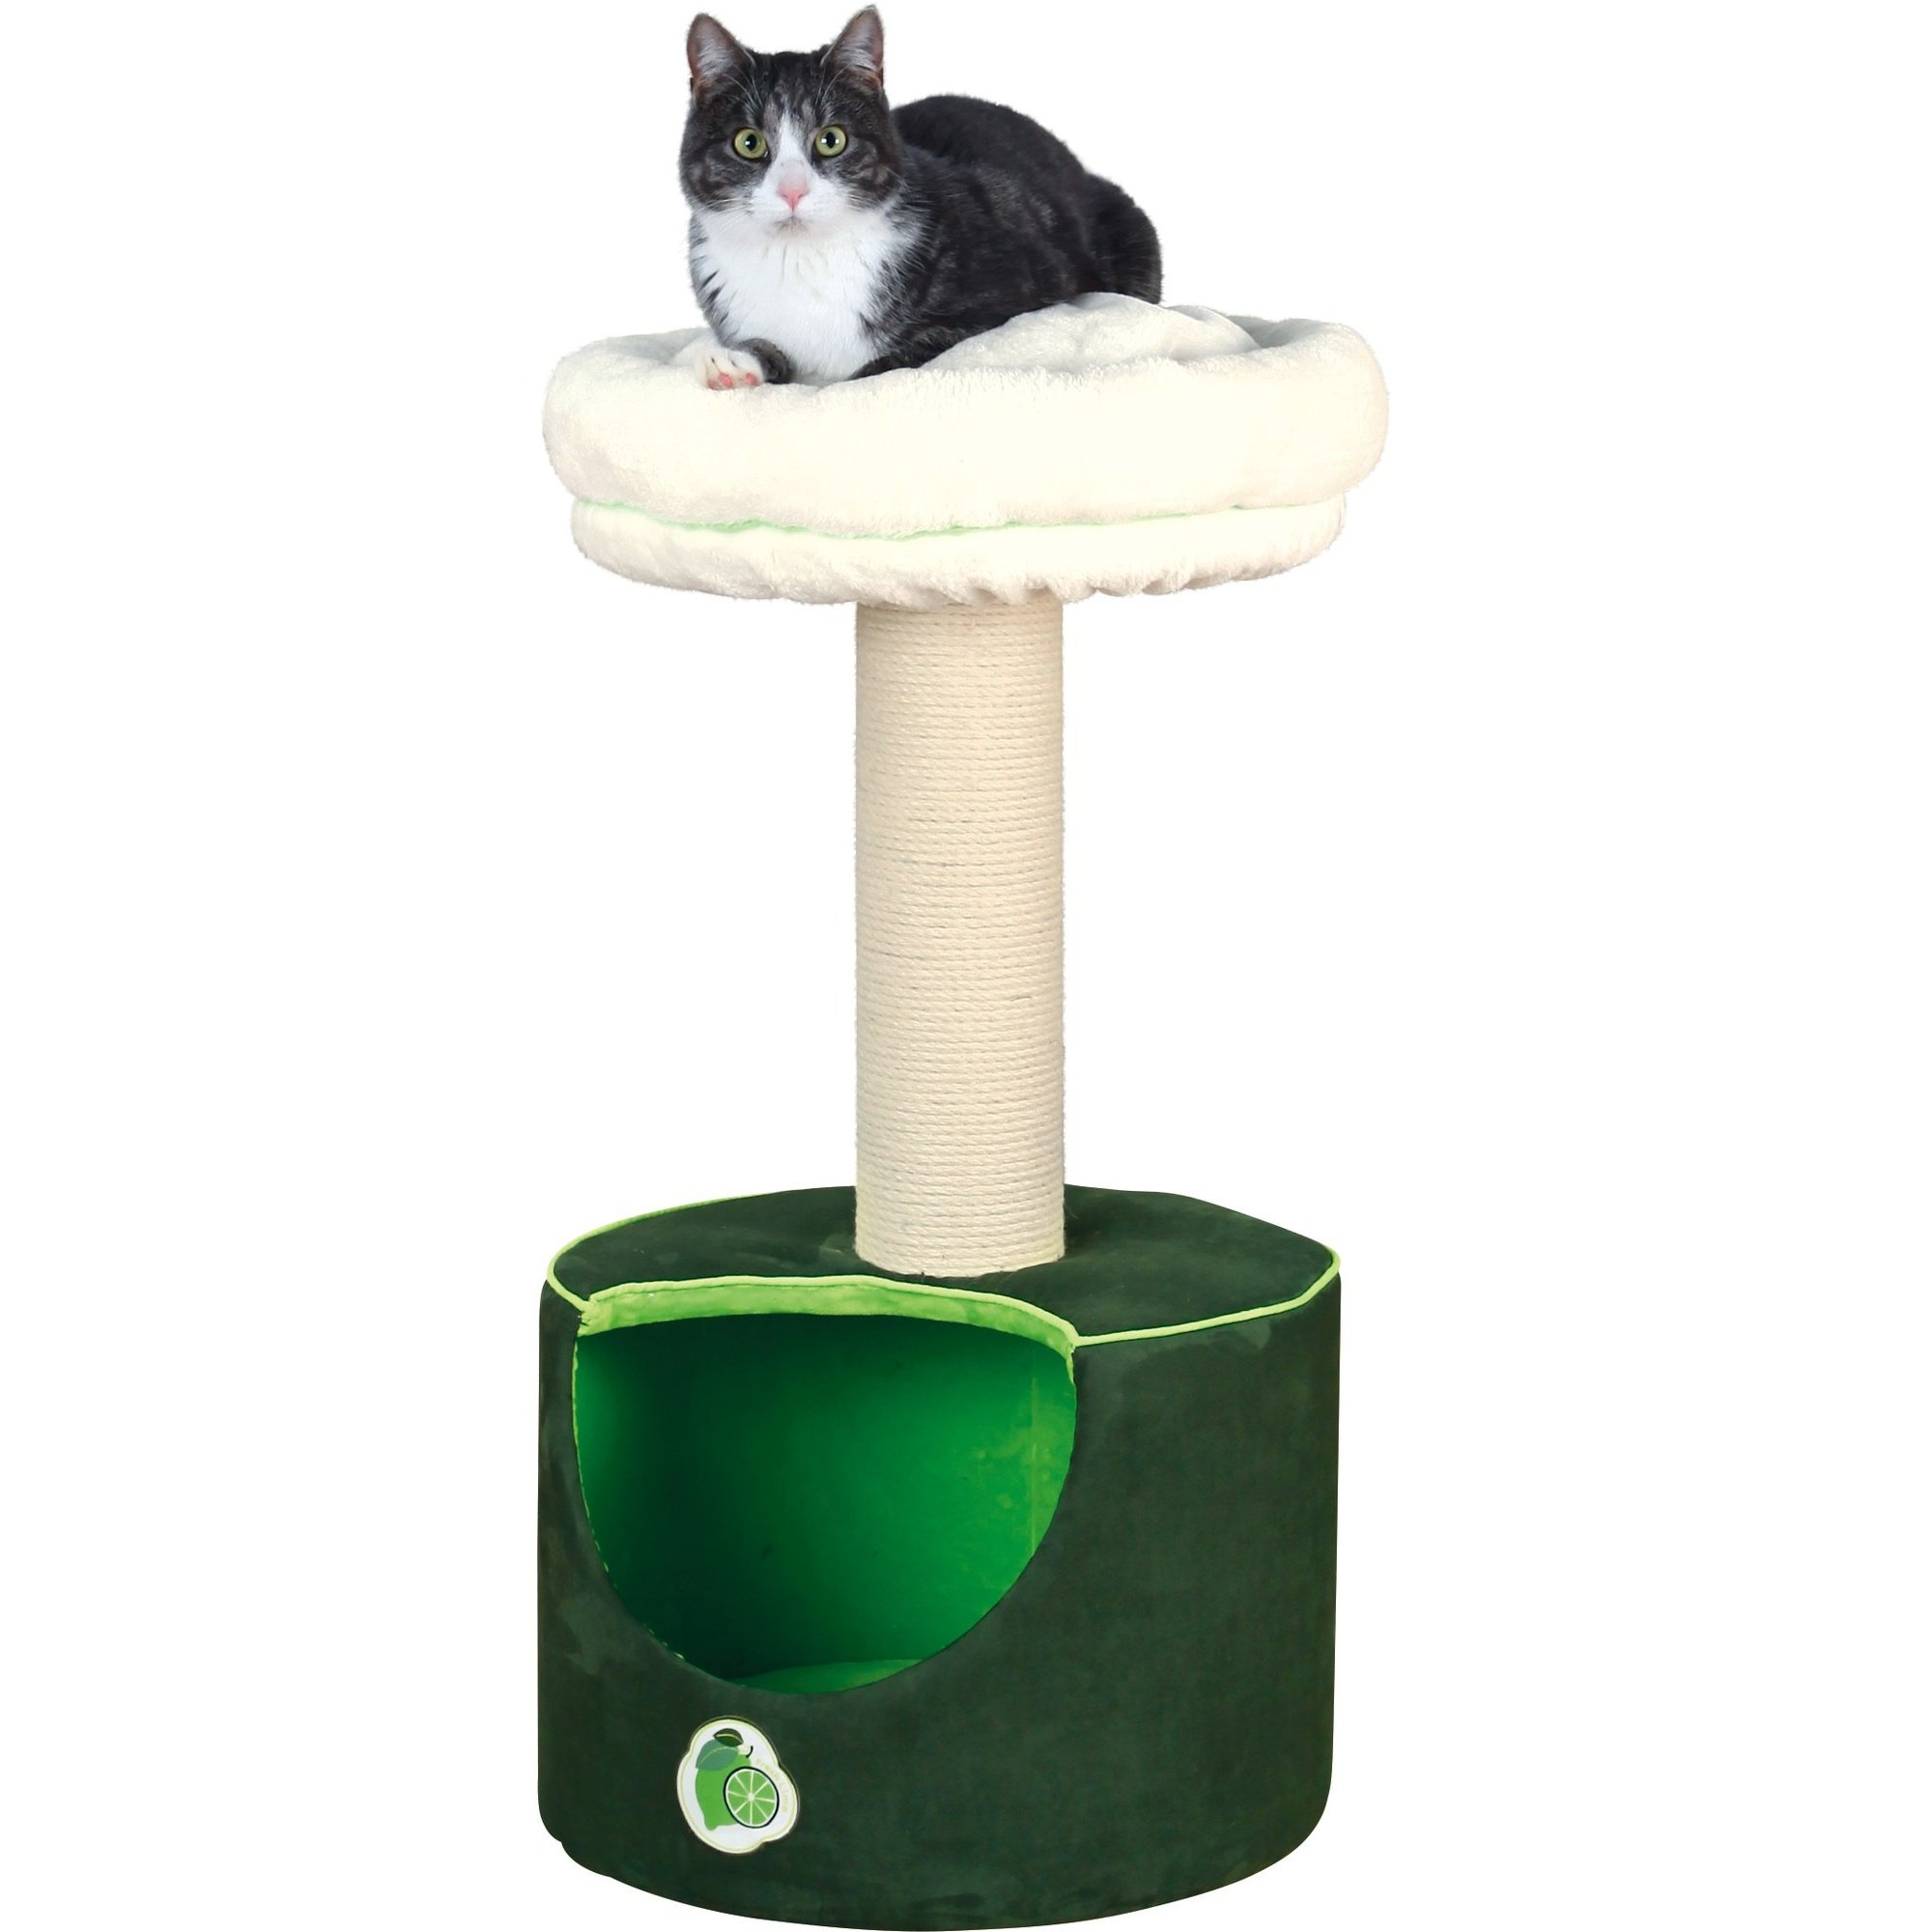 Trixie Fresh Lime Cat Scratching Post (30.7 inch) (Green/White)